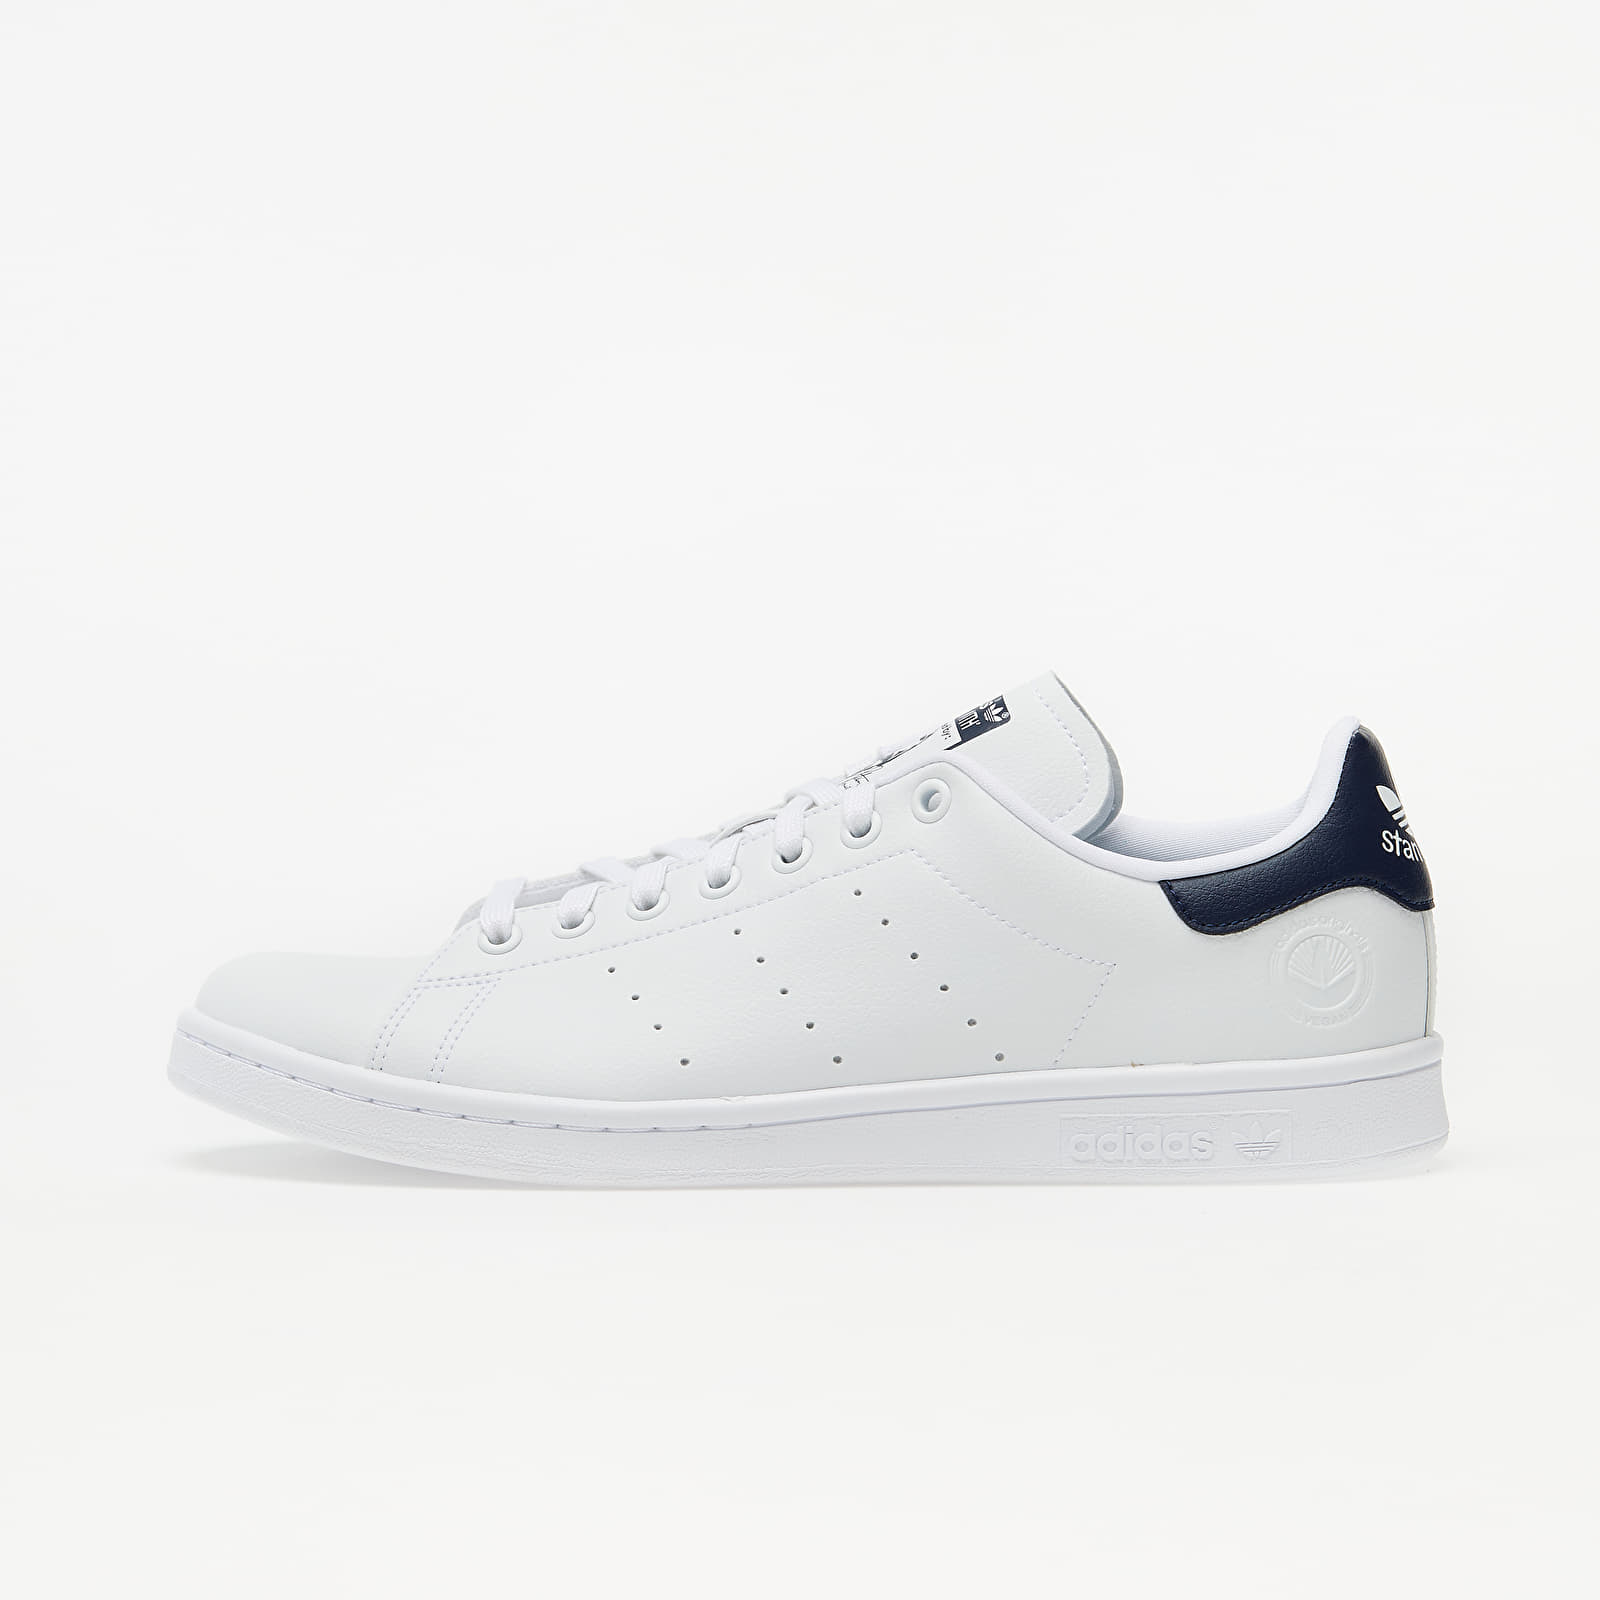 Men's shoes adidas Stan Smith Vegan Ftw White/ Collegiate Navy/ Green